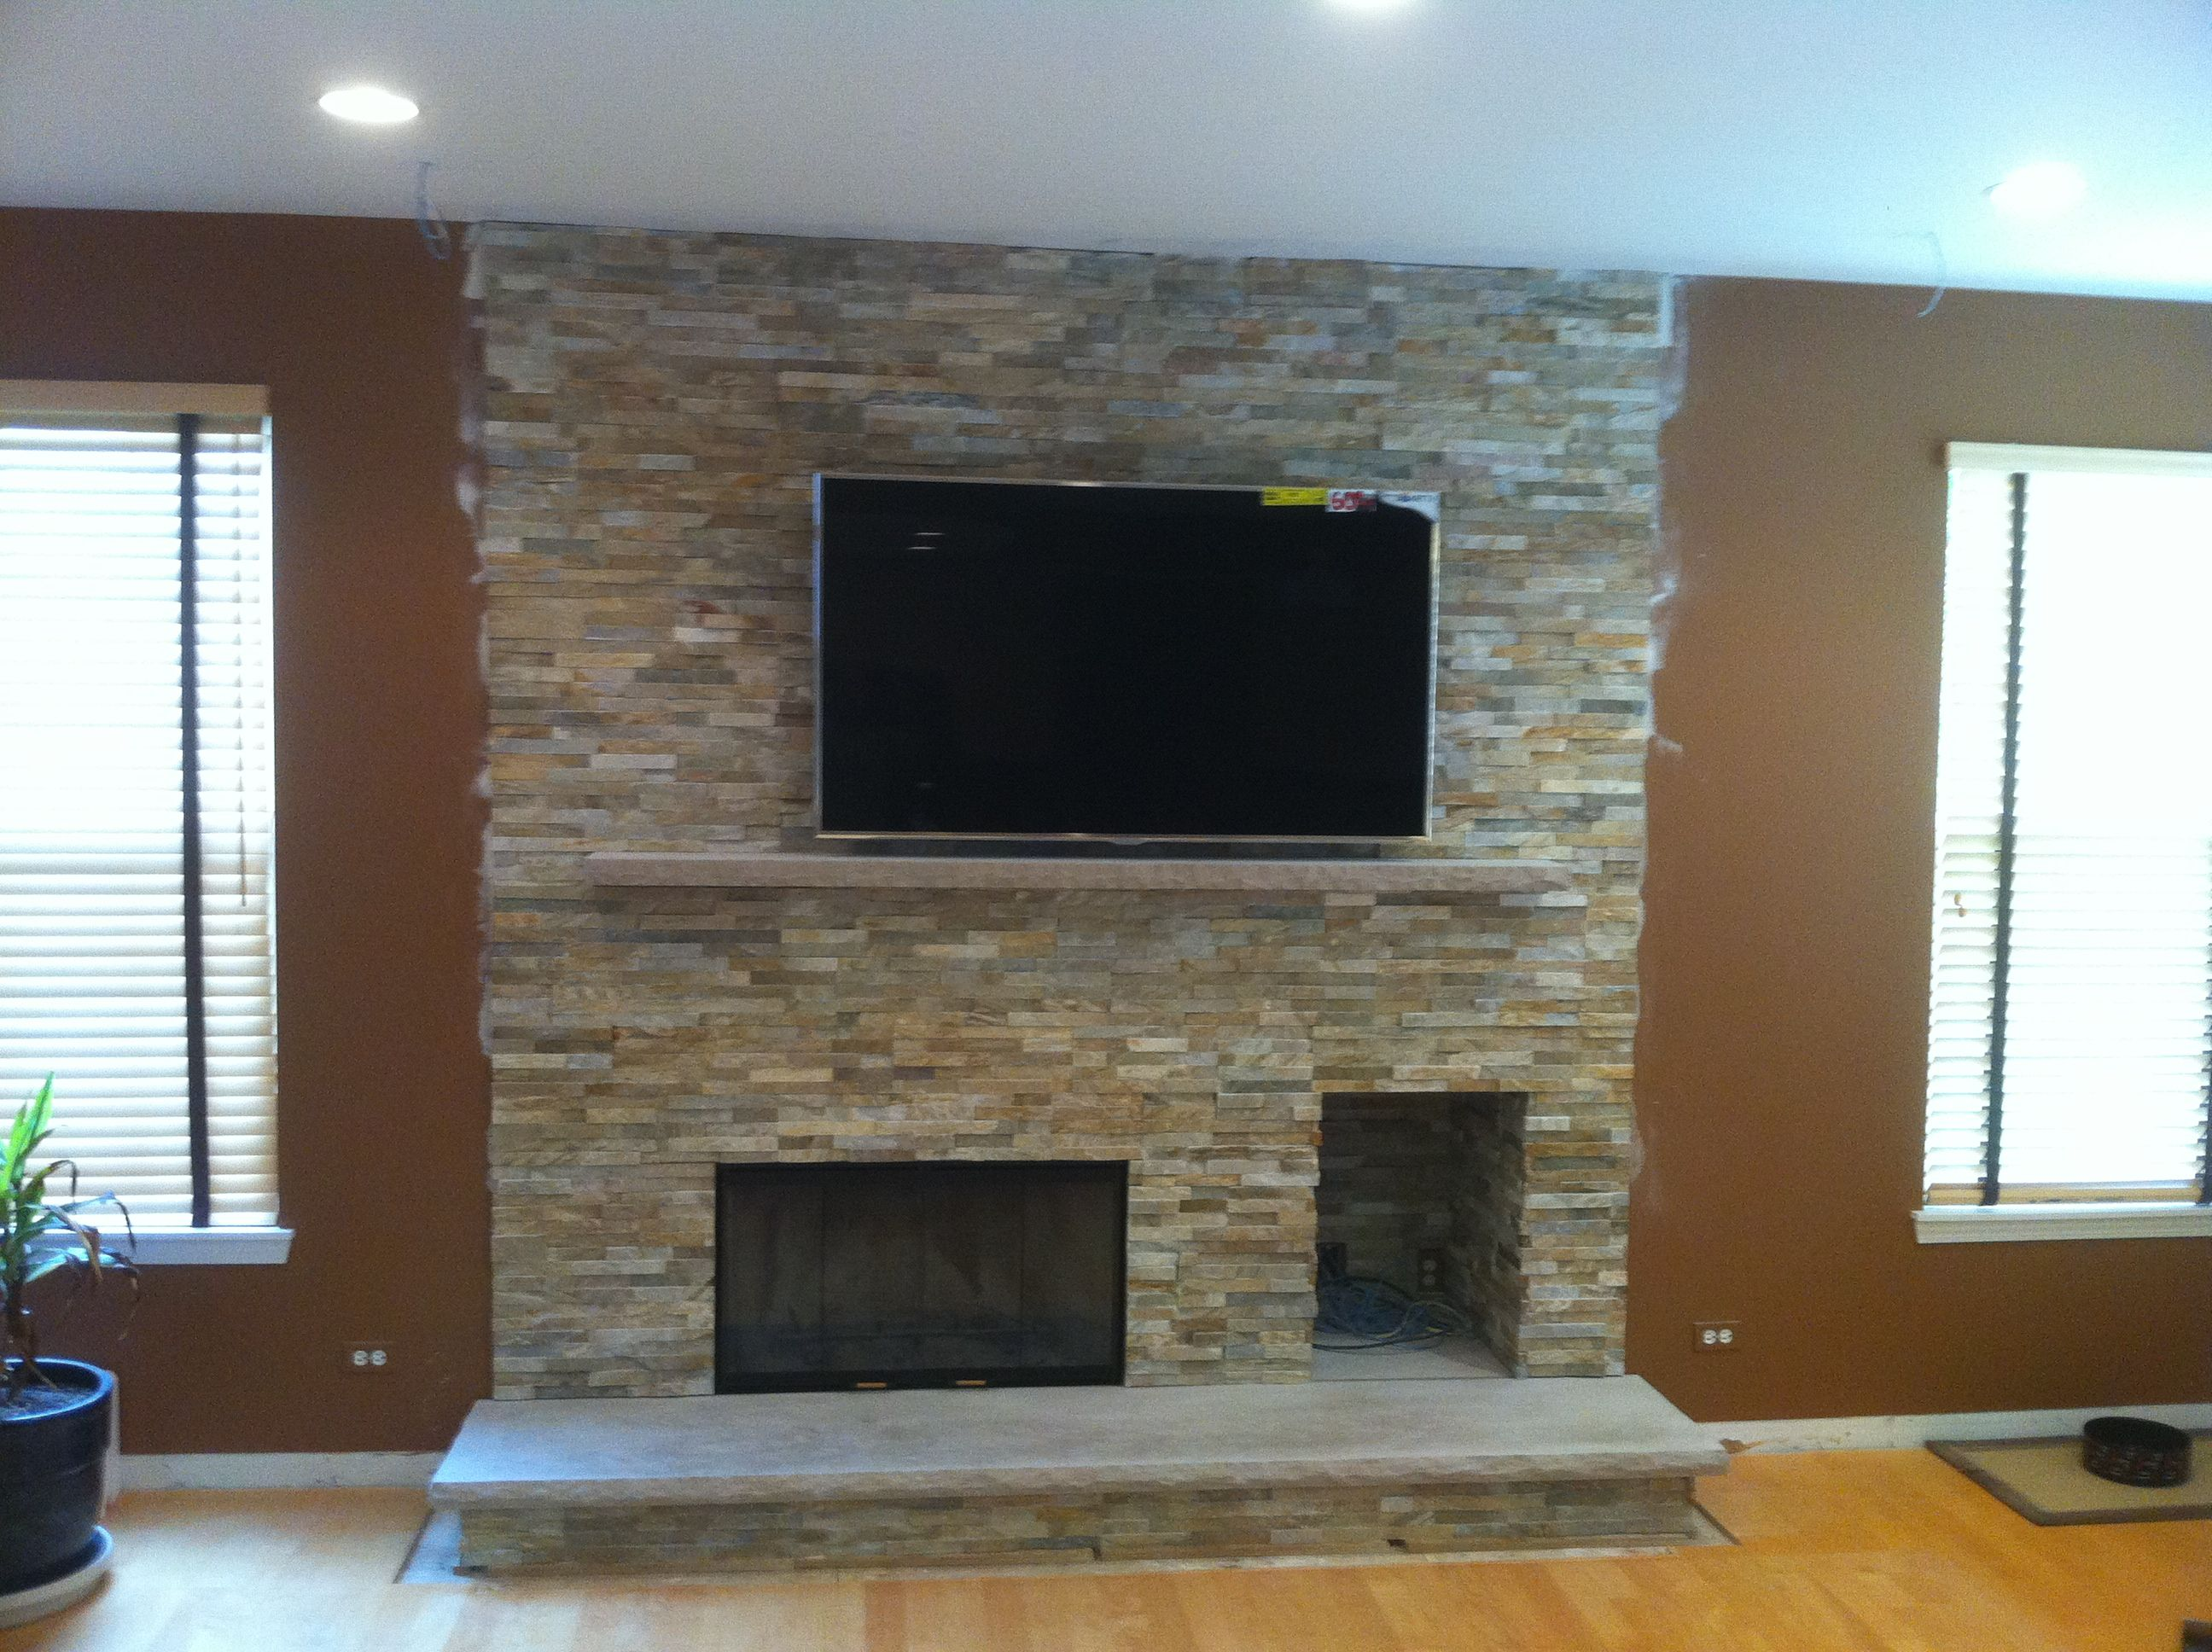 Modern Wood Burning Fireplace Rock Face Limestone Hearth Limestone Mantel Used To Deflect Heat